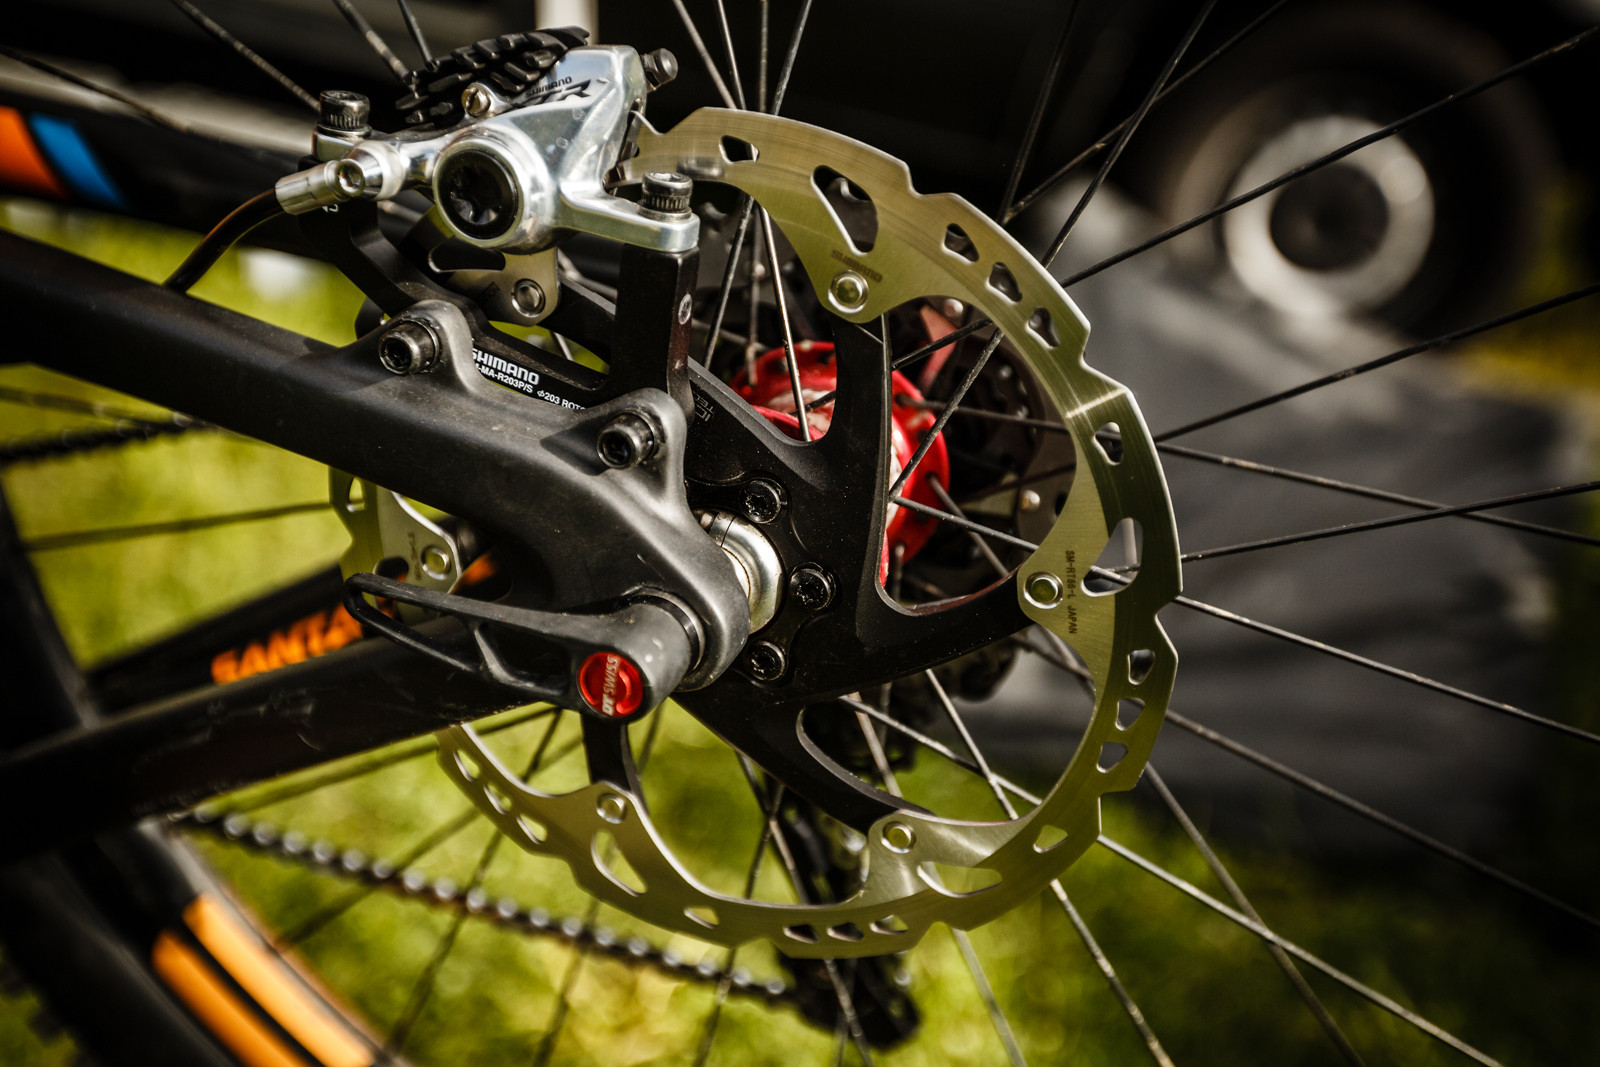 200mm Rear Rotor for Greg Minnaar at Val d'Allos Enduro World Series - Pit Bits: Enduro World Series Val d'Allos, France - Mountain Biking Pictures - Vital MTB